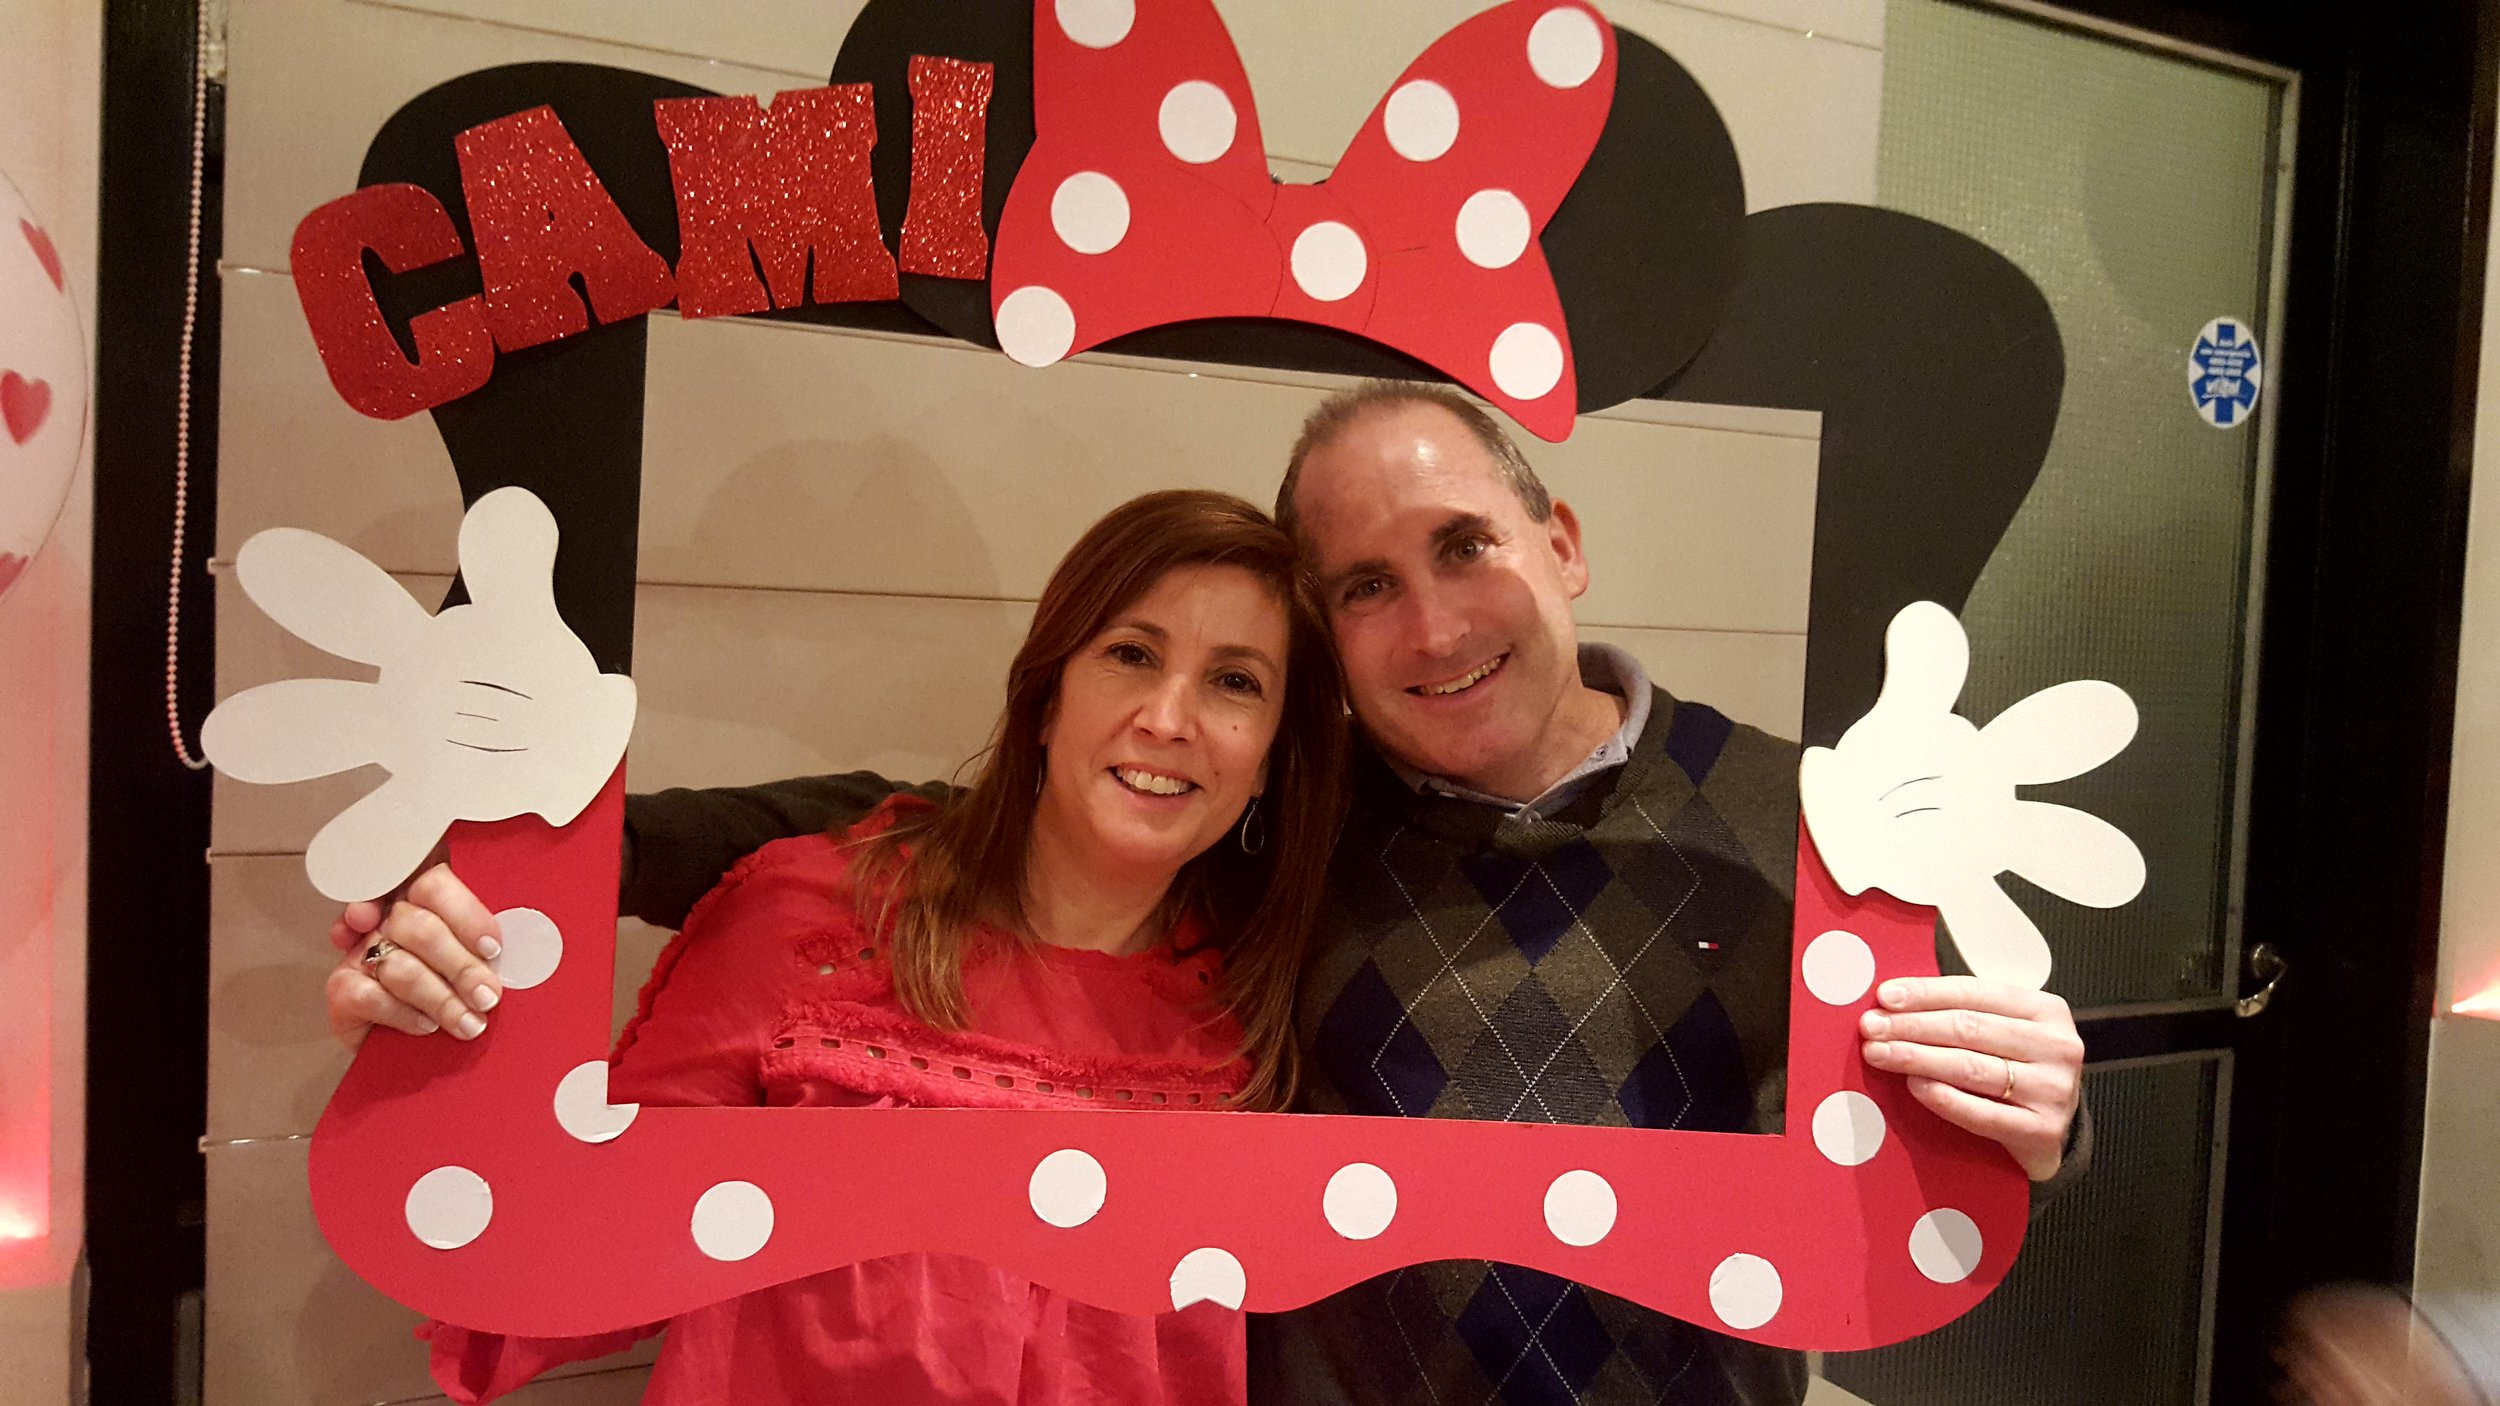 Minnie Mouse photobooth fun!